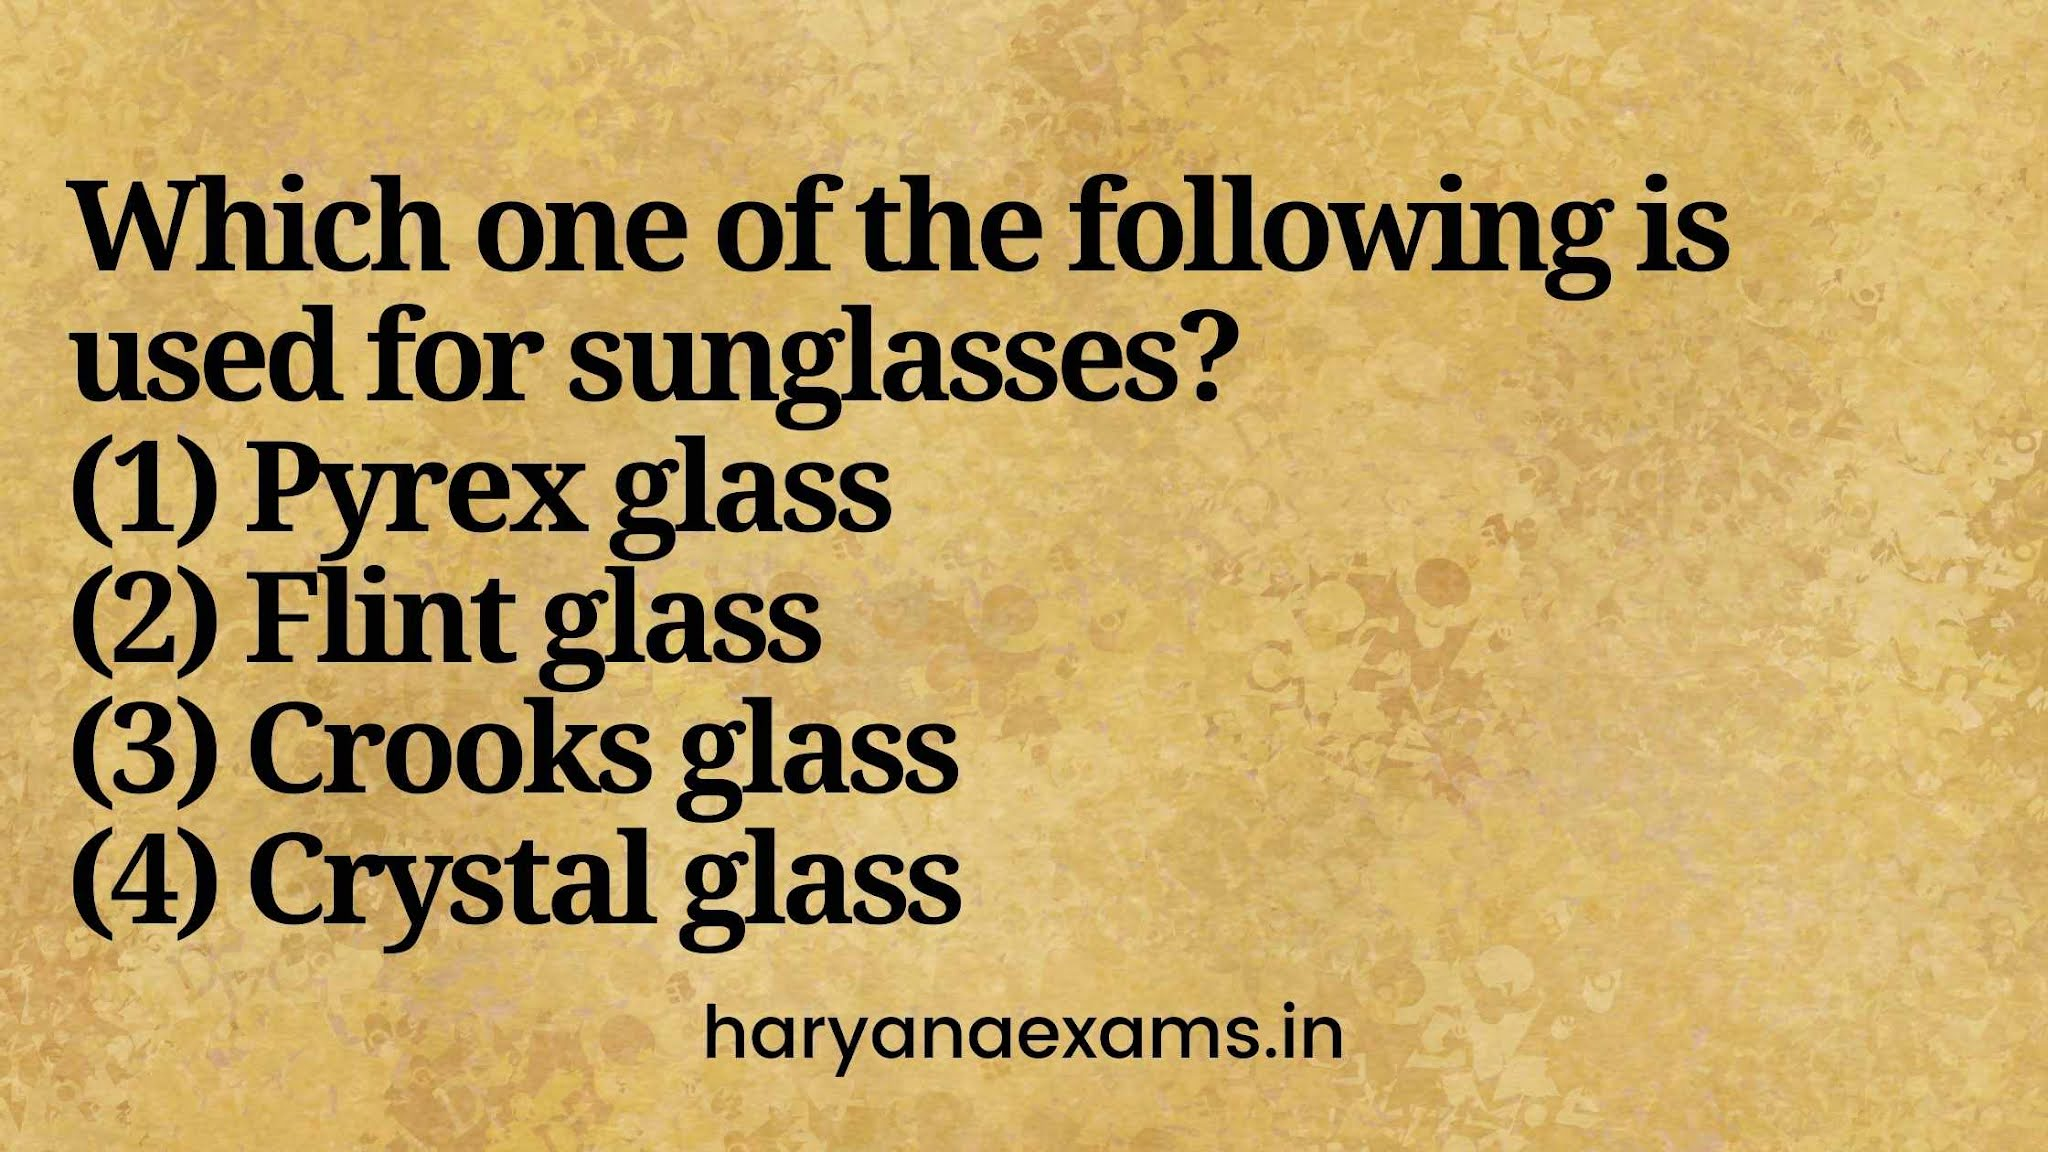 Which one of the following is used for sunglasses?   (1) Pyrex glass   (2) Flint glass   (3) Crooks glass   (4) Crystal glass